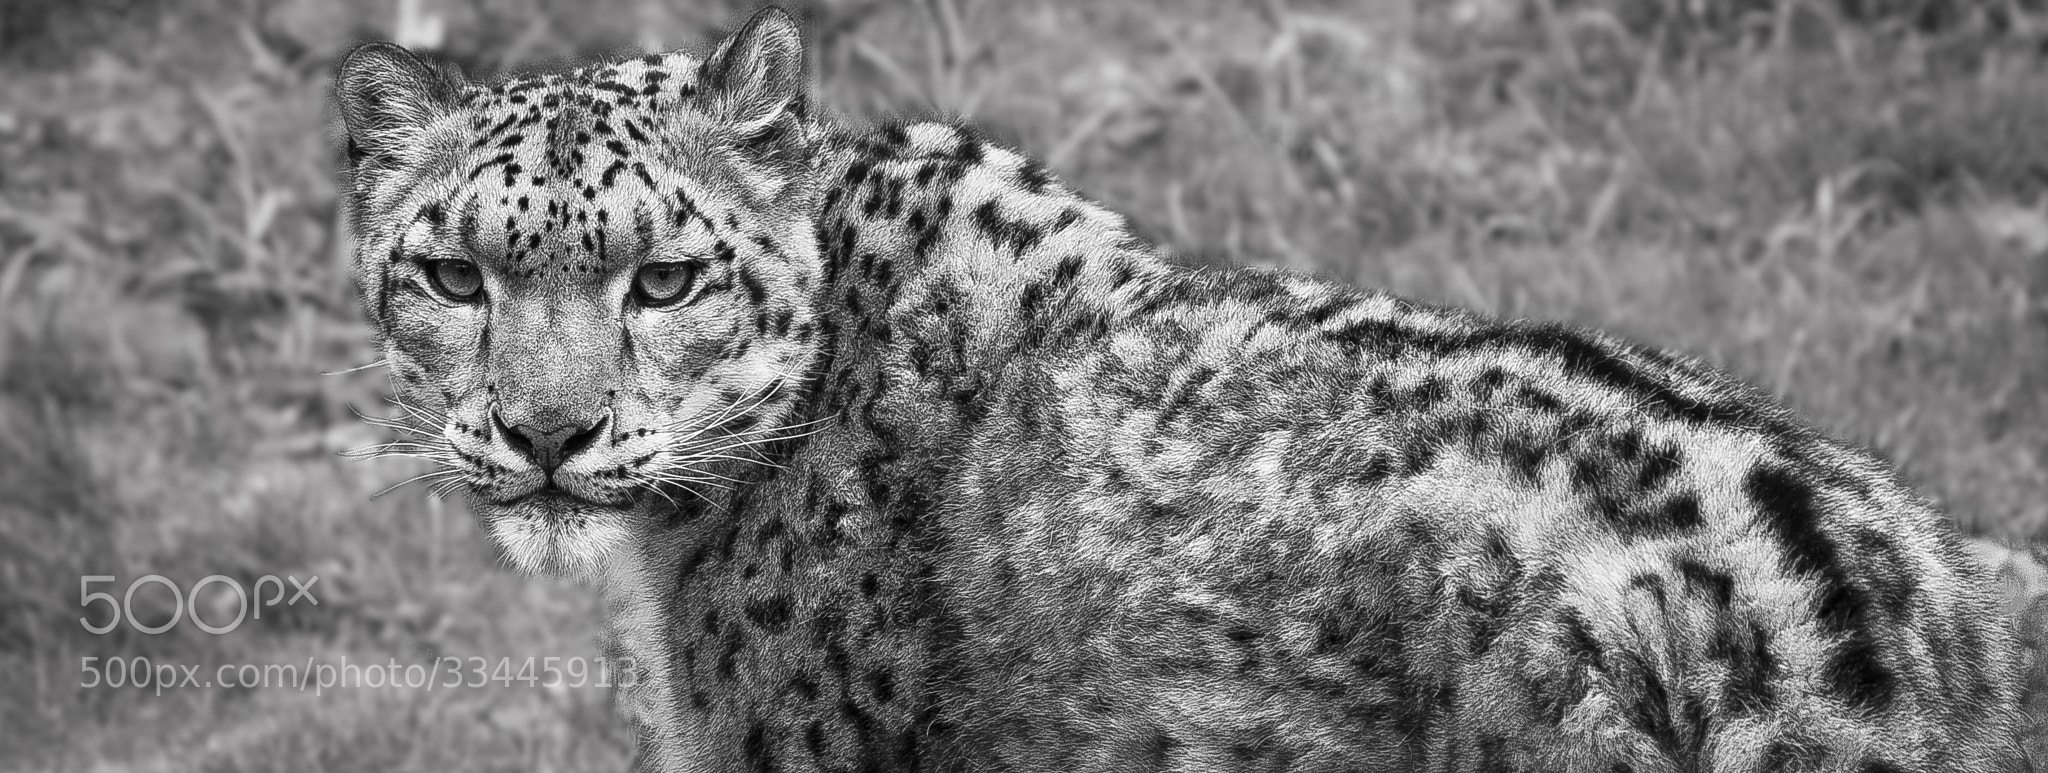 Photograph The Piercing Stare Of A Snow Leopard by Fred Glozman  on 500px